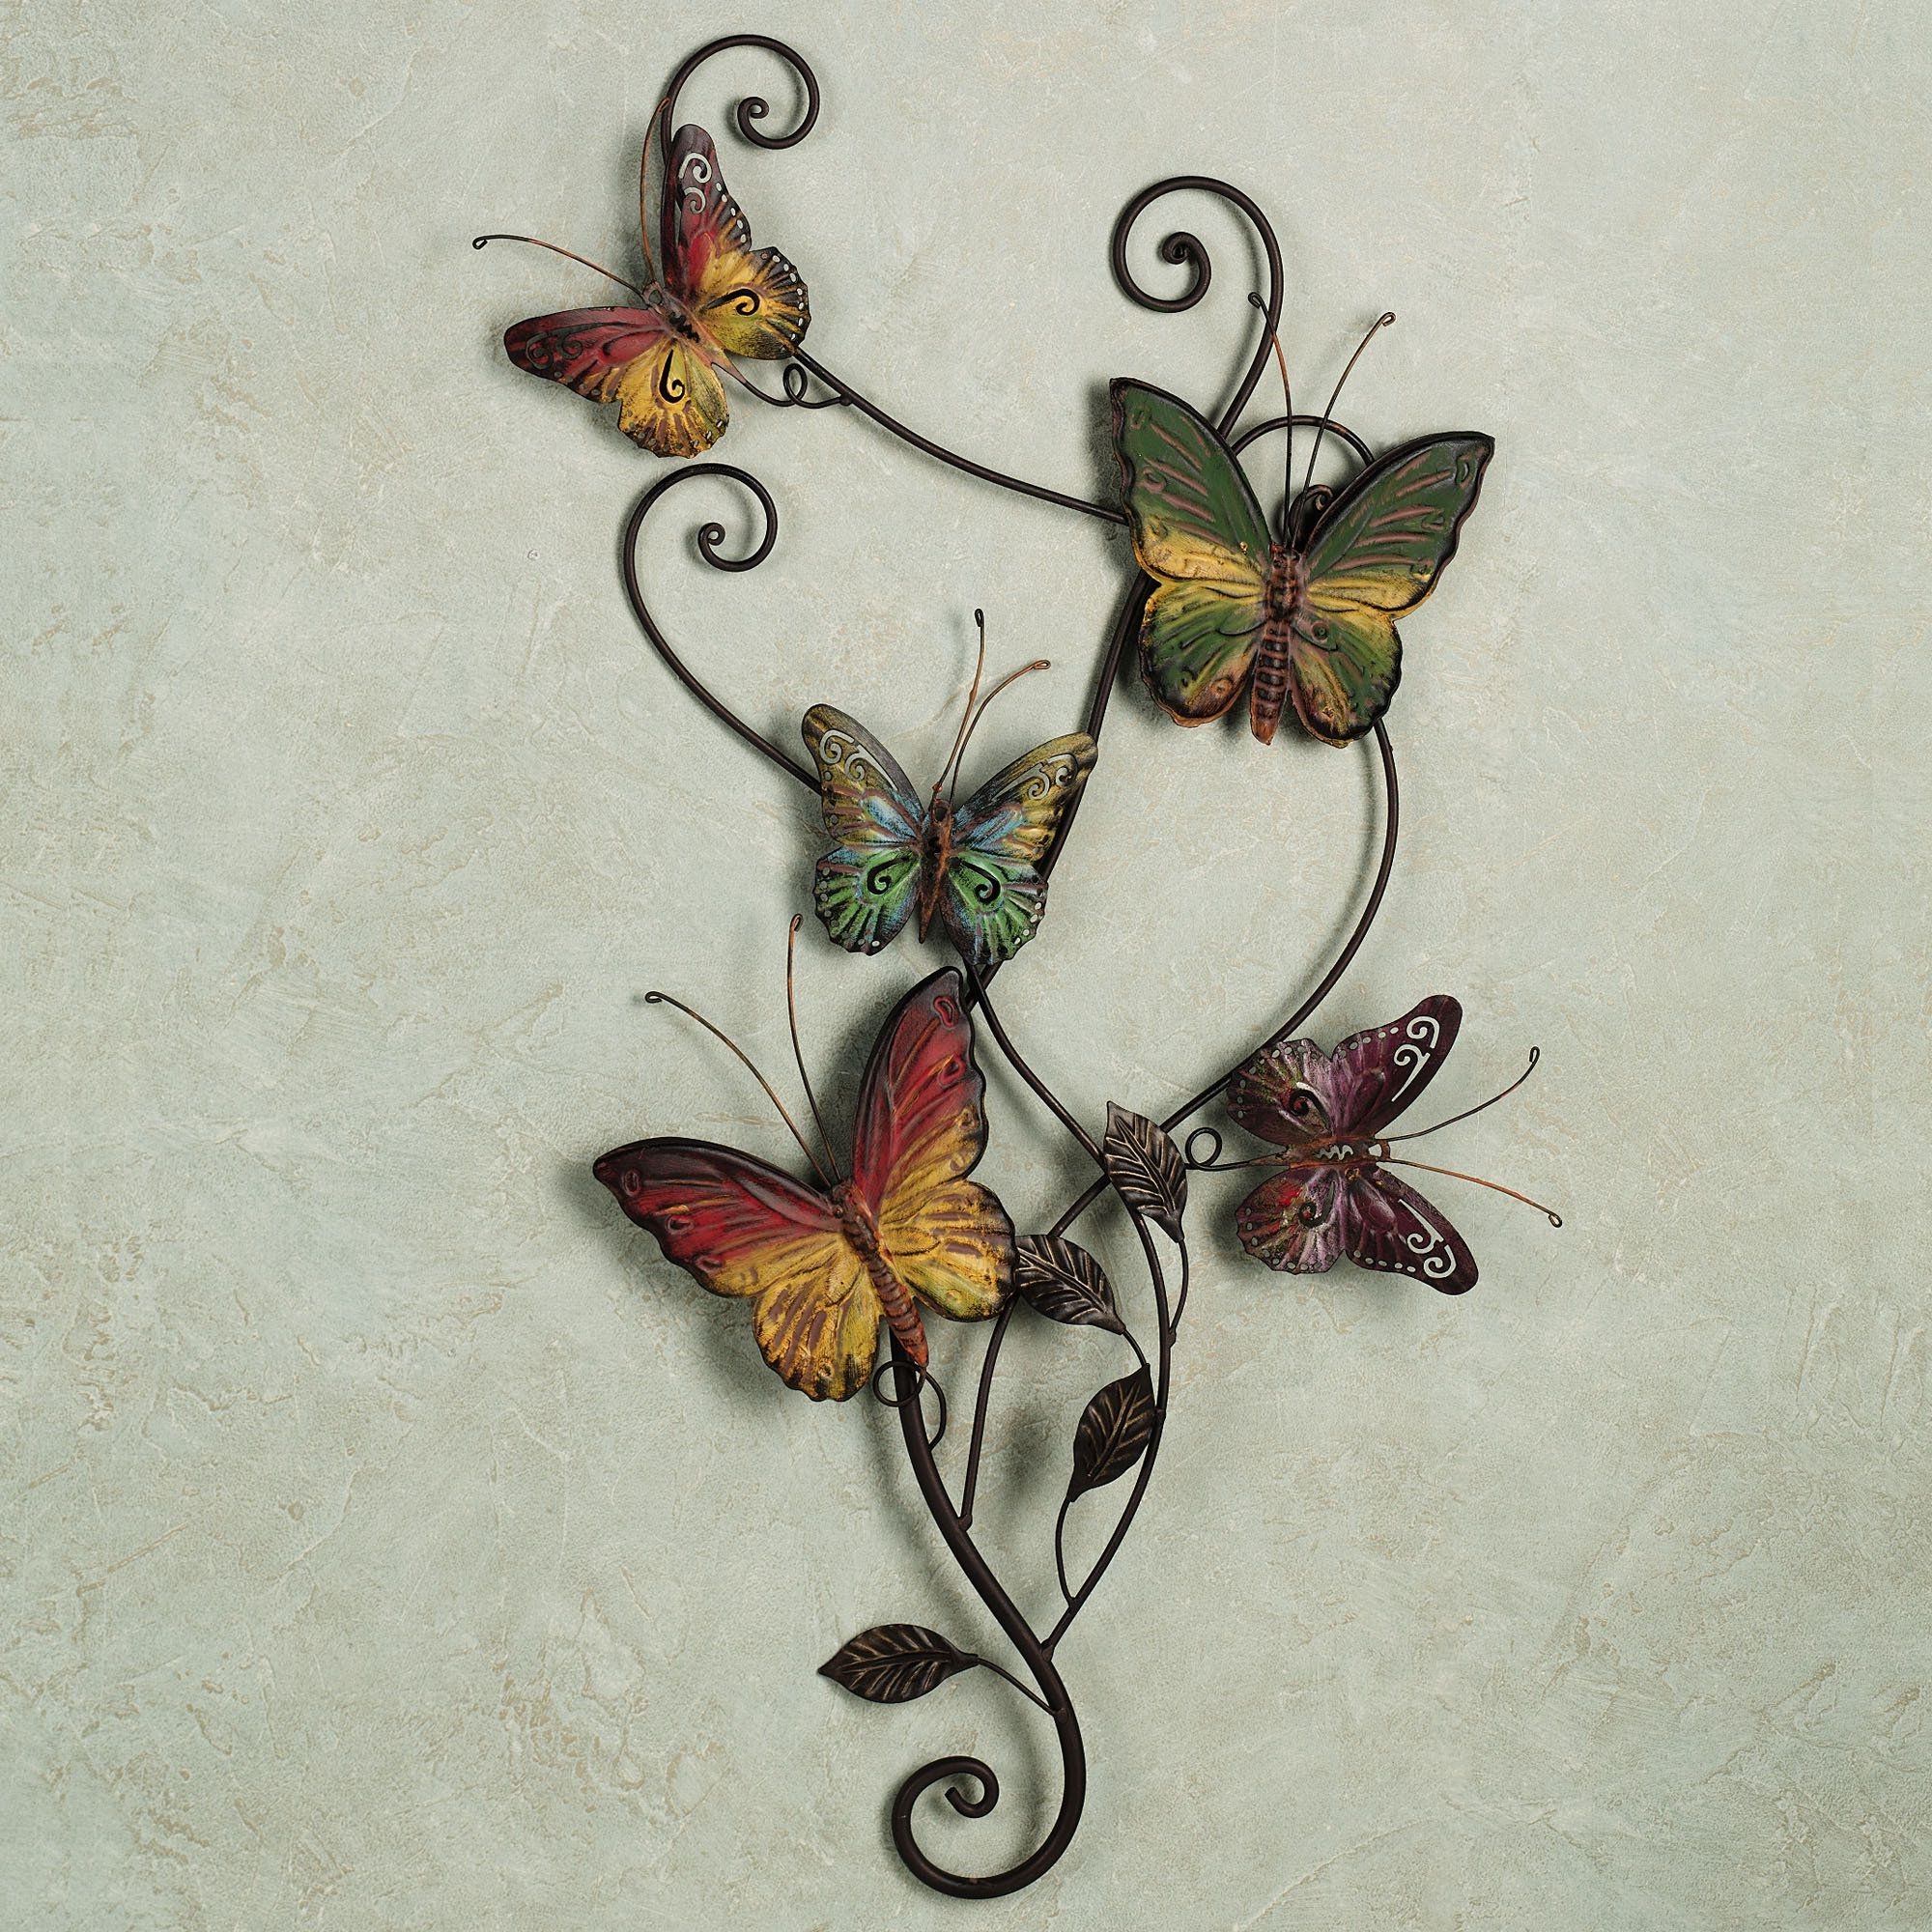 Metal Butterfly Wall (View 15 of 20)